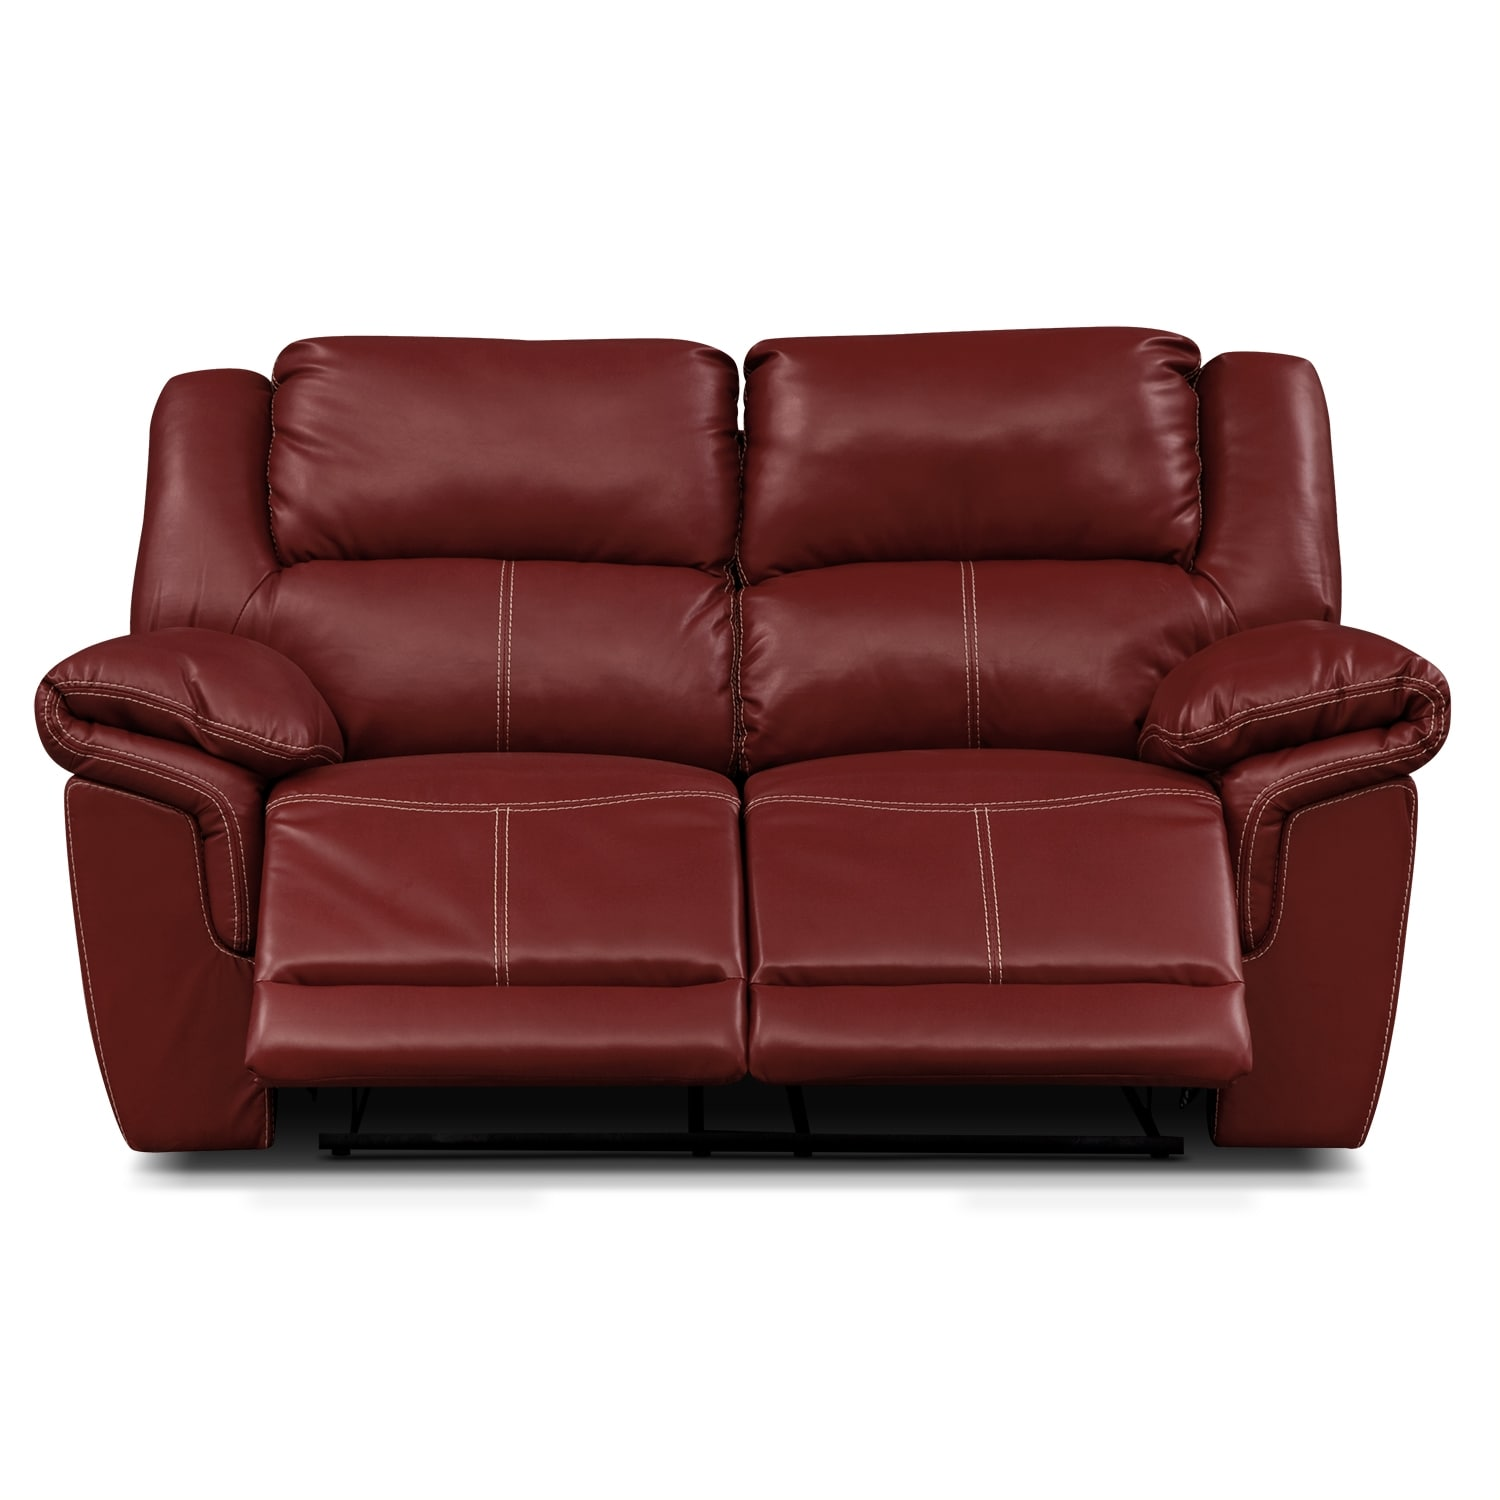 Jaguar ii leather dual reclining loveseat value city furniture Leather reclining loveseat